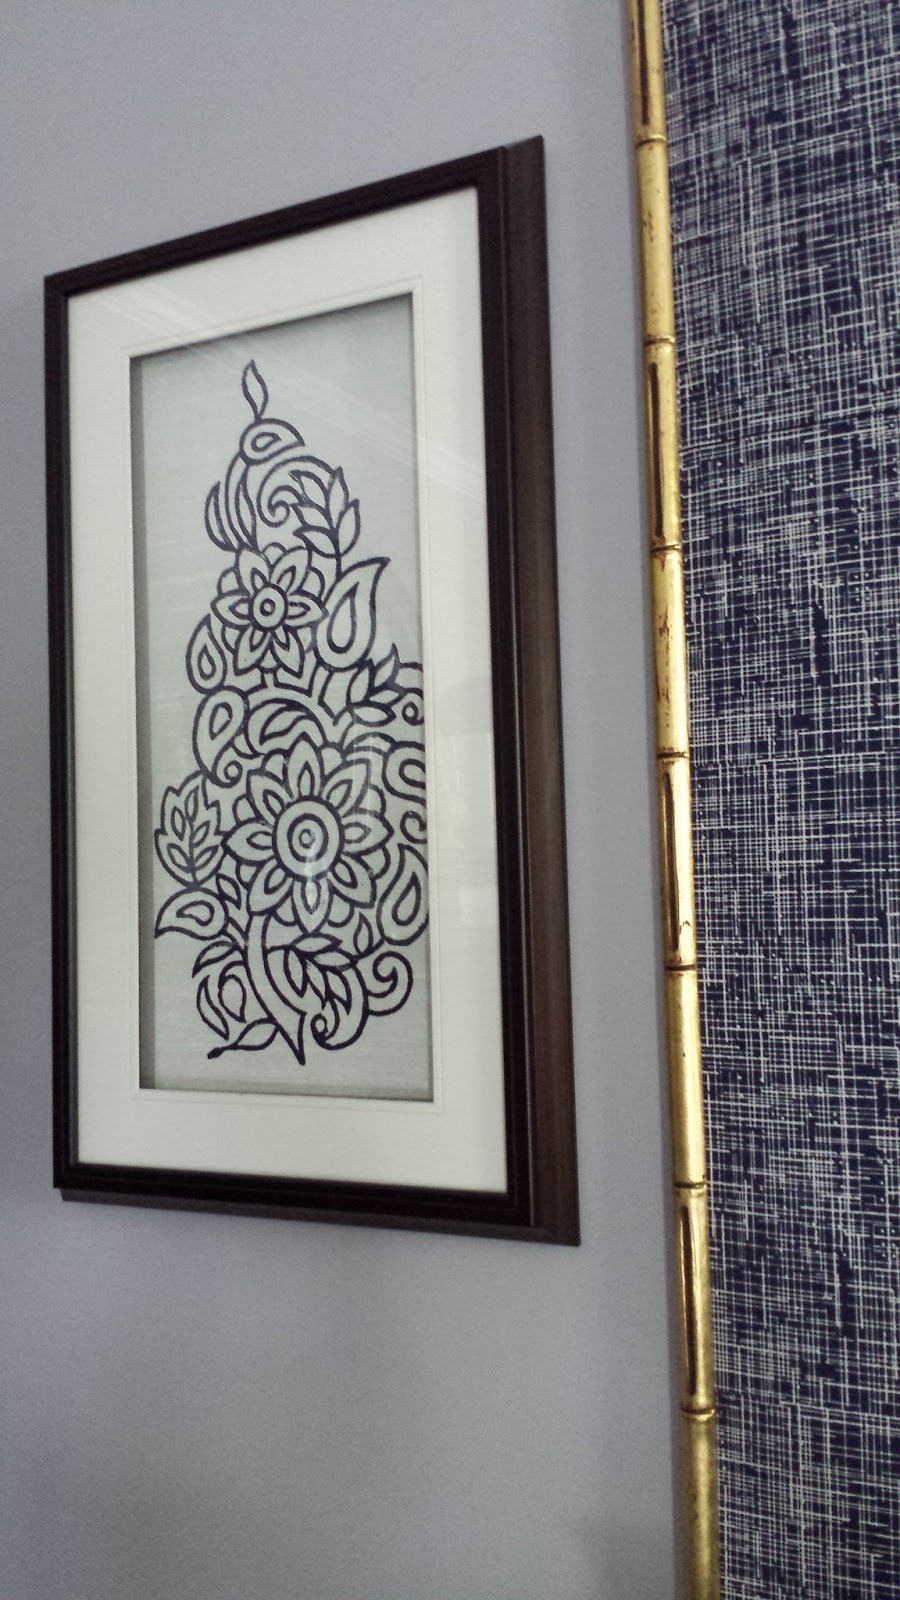 Focal Point Styling: Diy Indigo Wall Art With Framed Fabric Throughout Best And Newest Wall Art Fabric Prints (View 5 of 15)